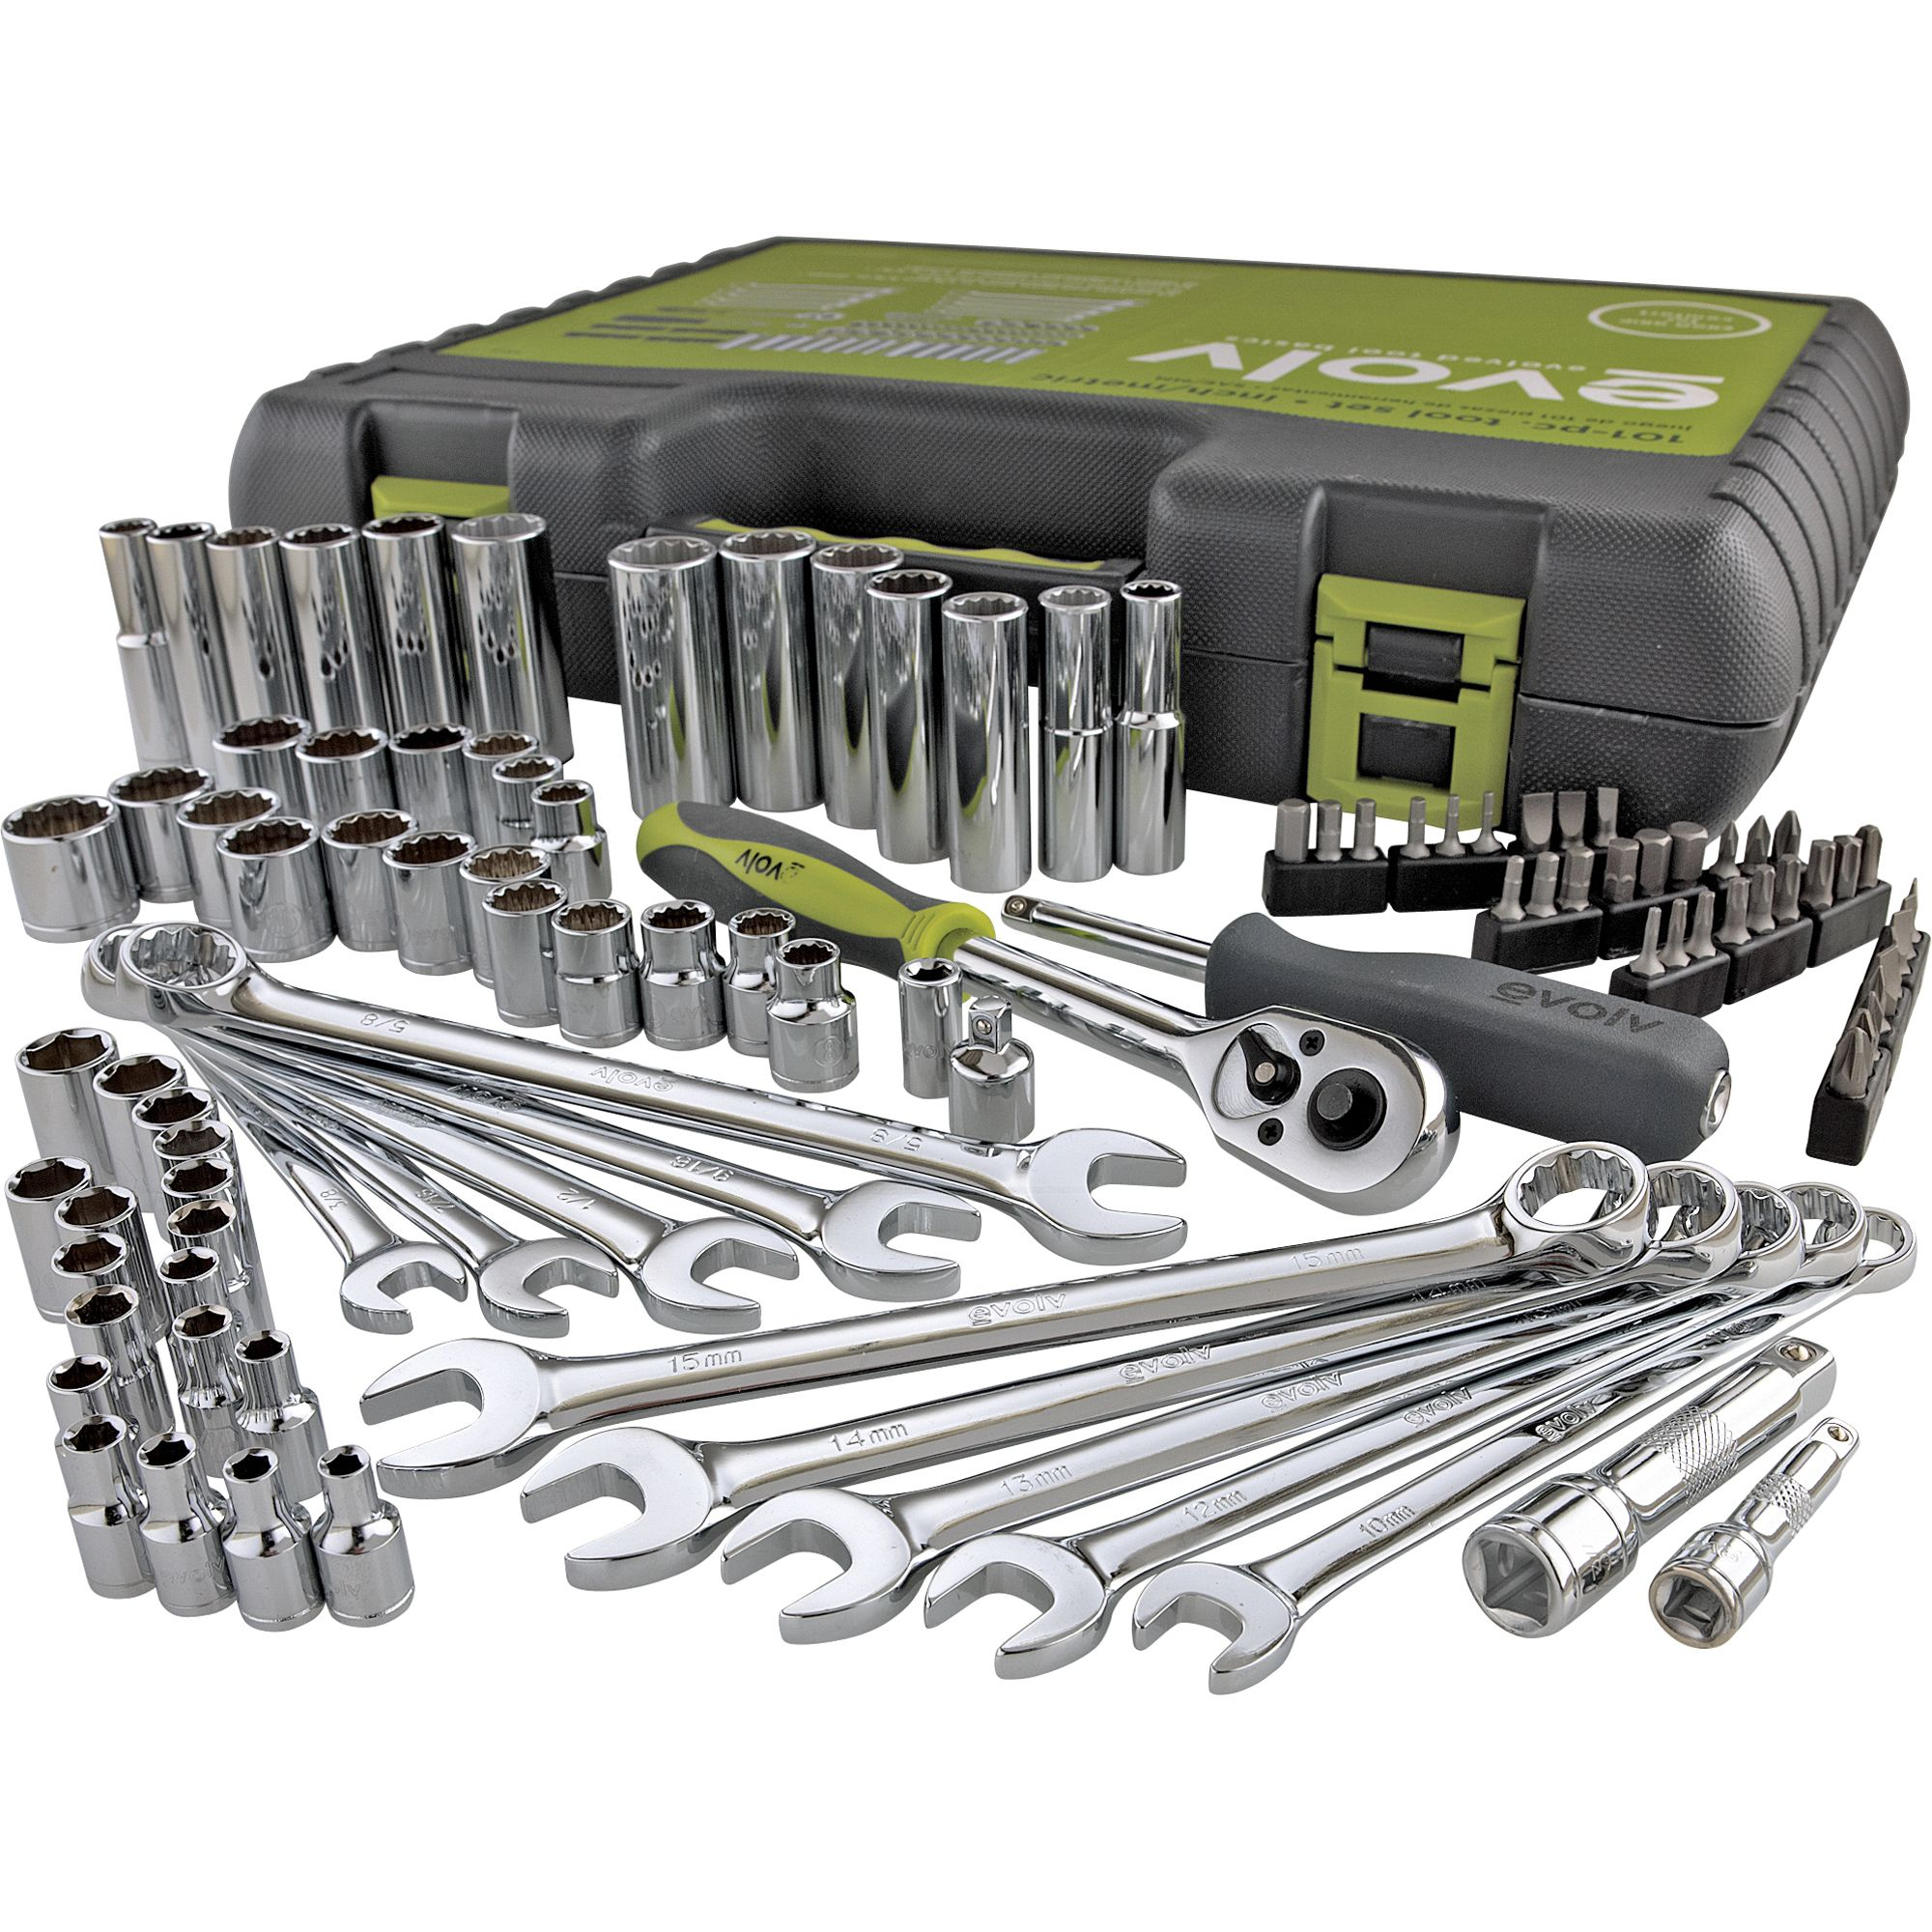 101 pc. Mechanics Tool Set